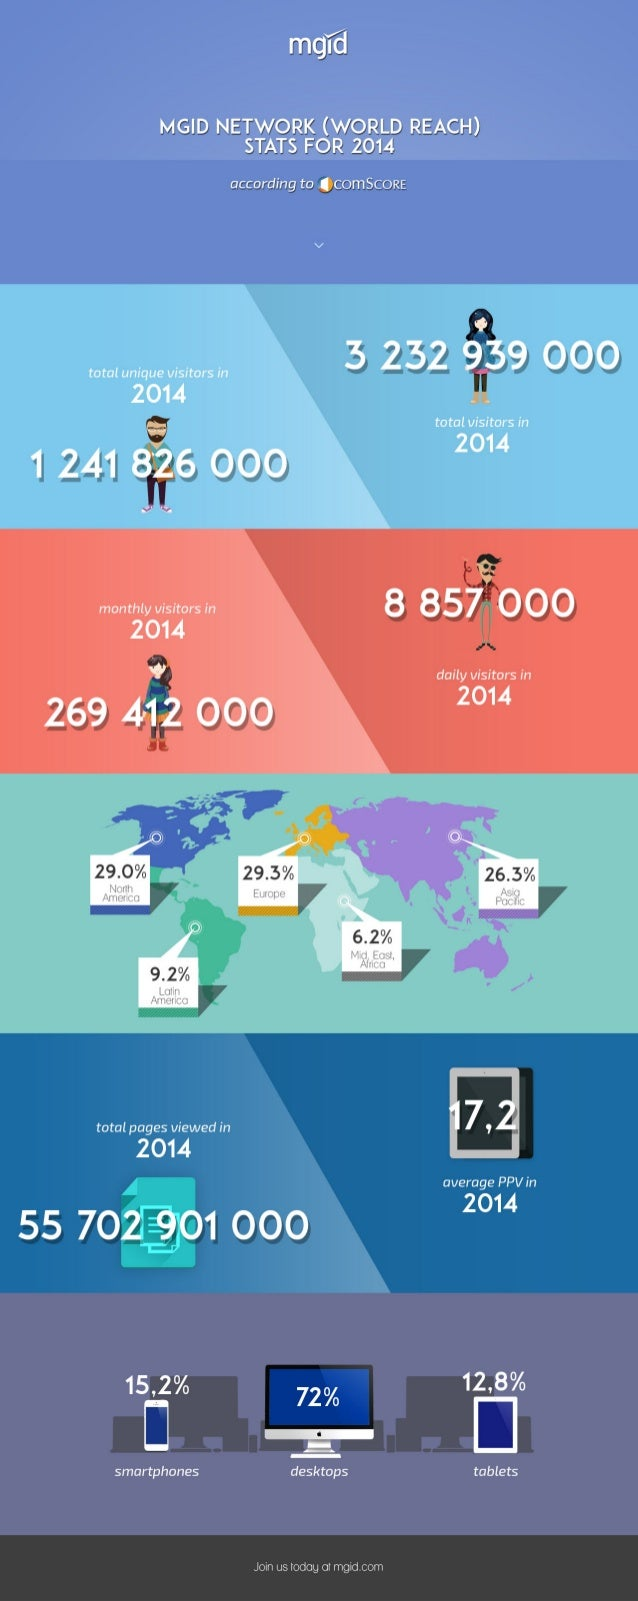 MGID, World Reach 2014 (according to comSocre)